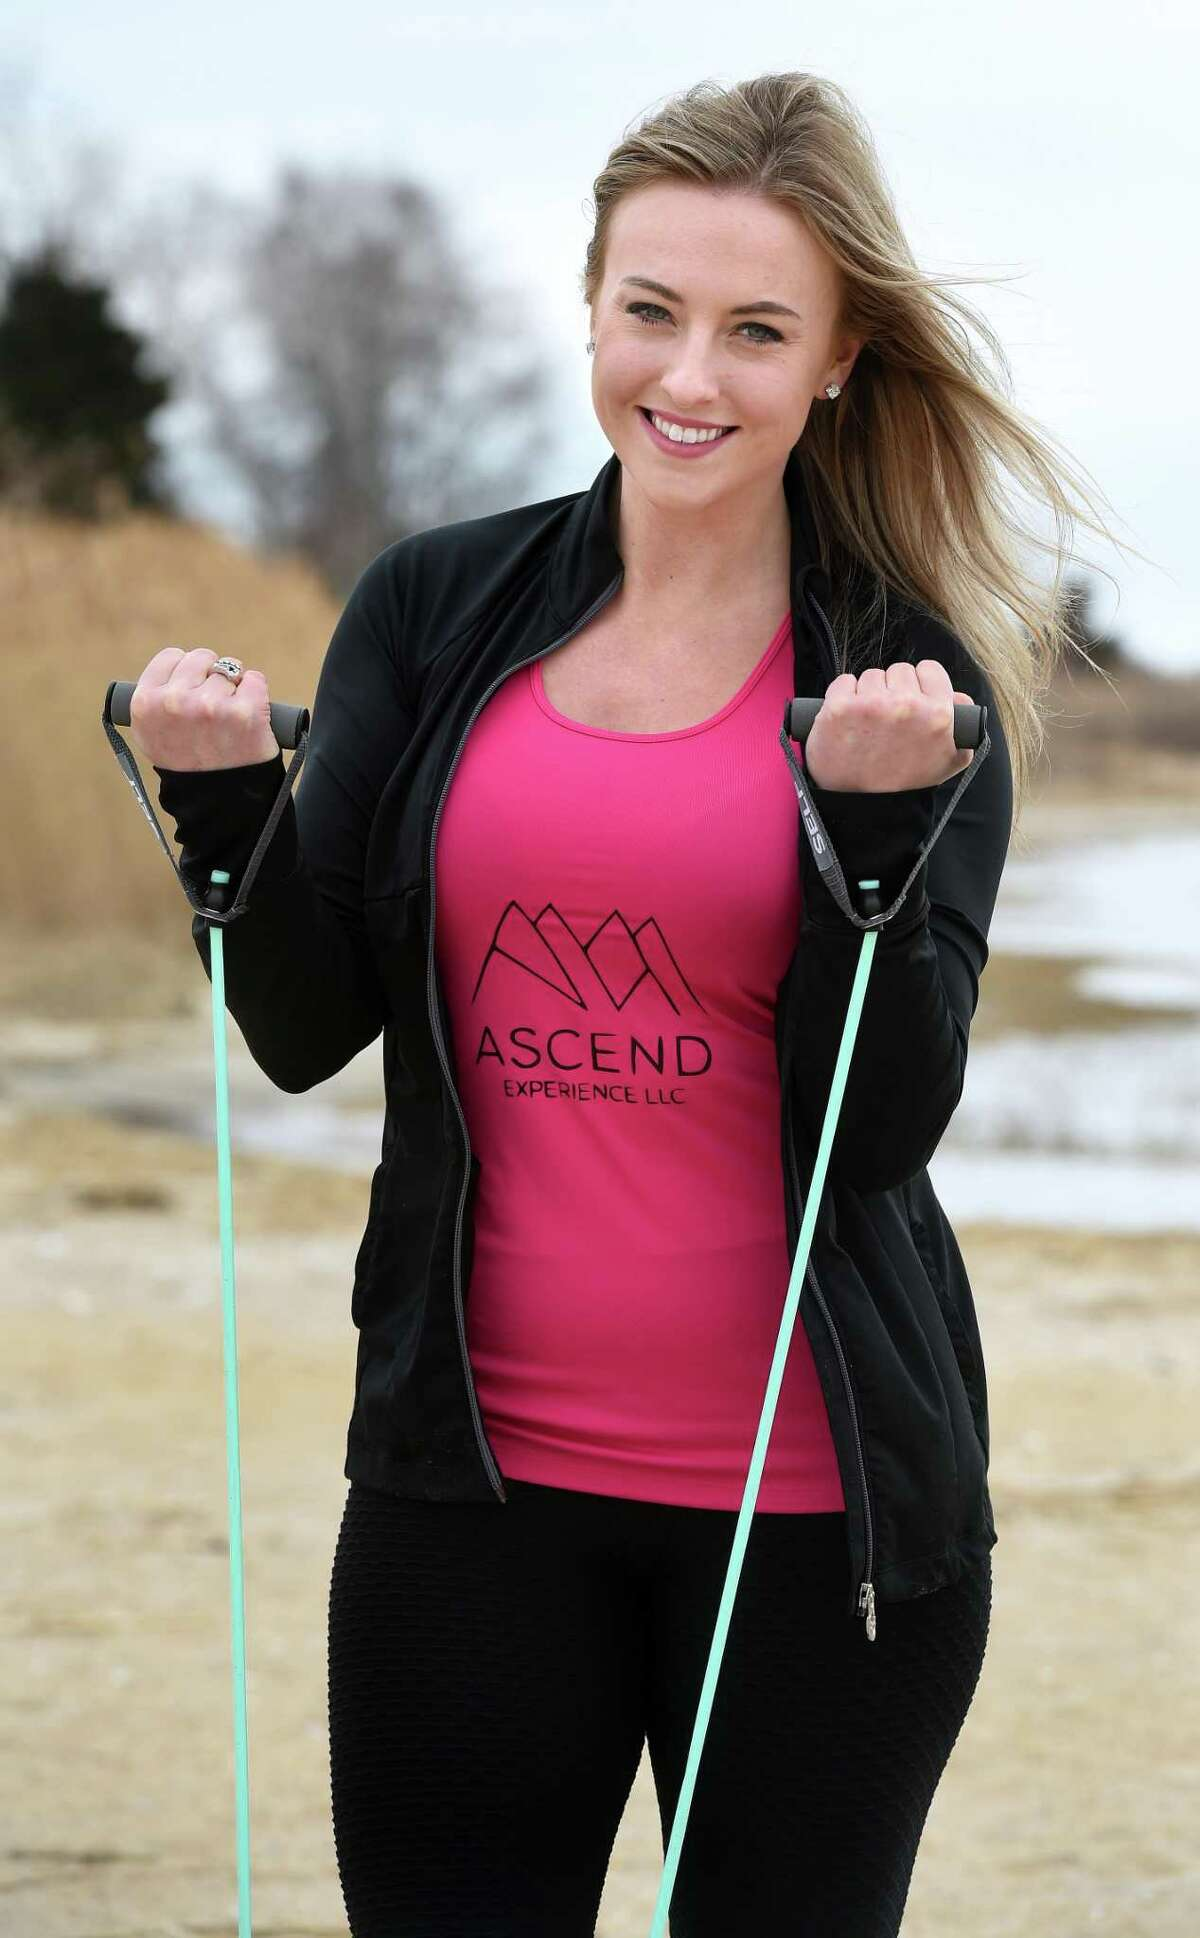 Former New England Patriot cheerleader and owner of Ascend Experience, Alex Brandy, is photographed at the Clinton Town Beach on March 12, 2020. Workouts are planned for Monday, Wednesday, Friday at 8:30 a.m., and Zaccagnini said she loves the time spent with Brandy.